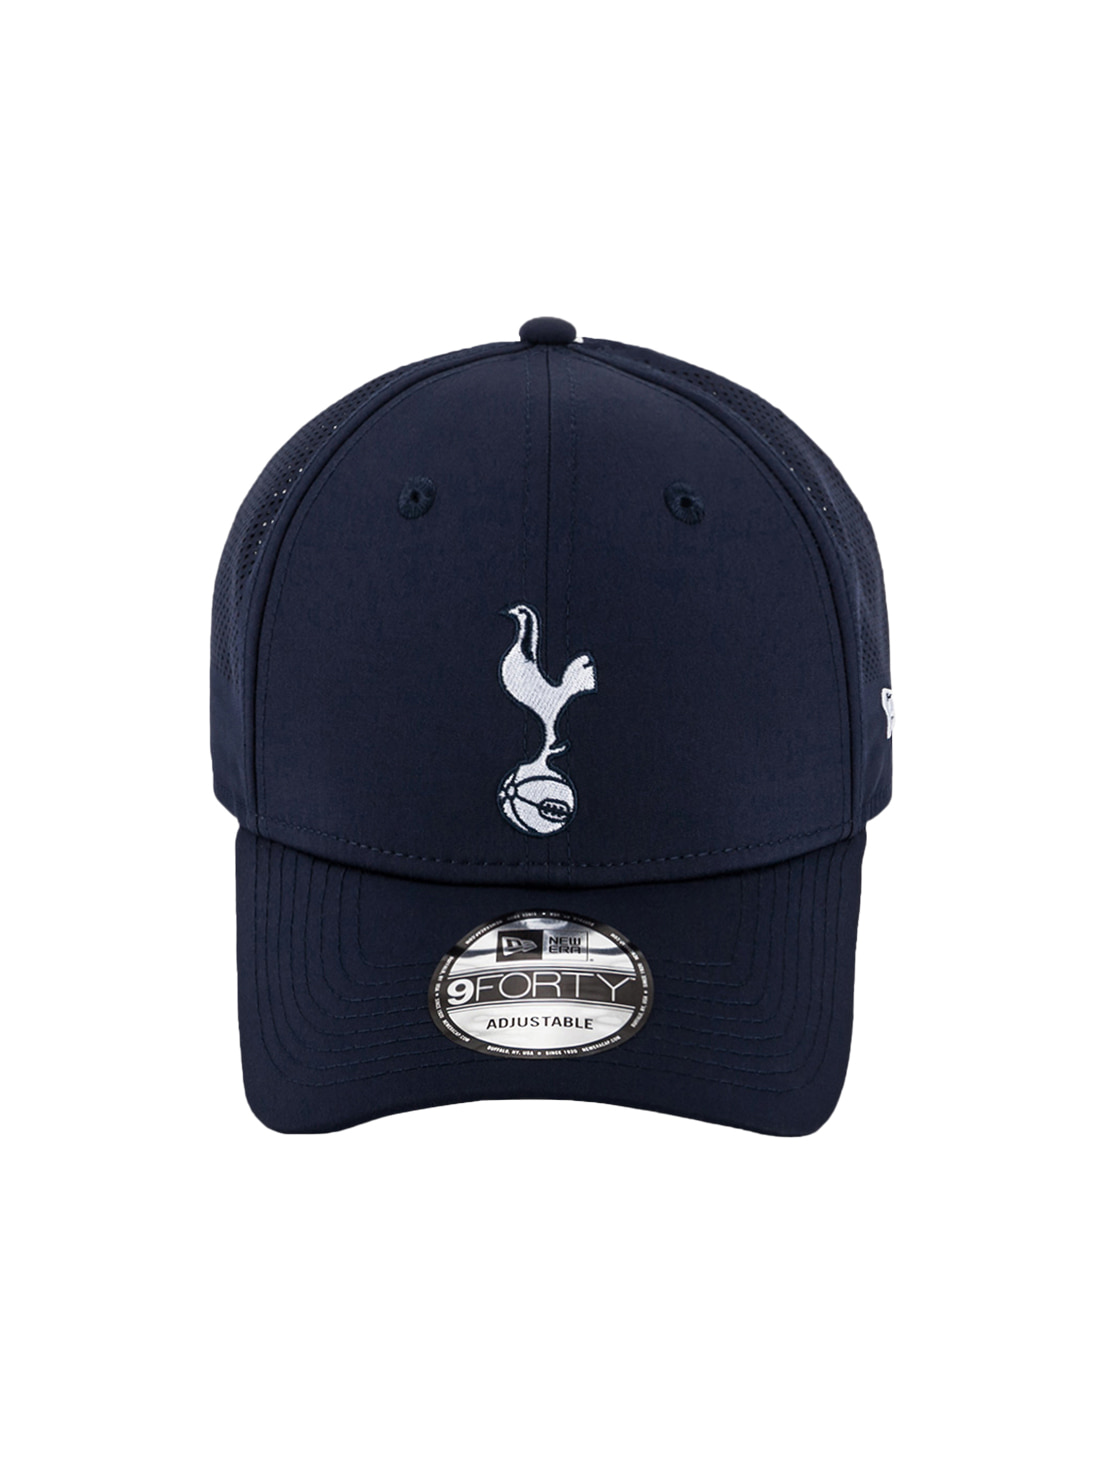 GOALSTUDIO (Sold Out) TOTTENHAM PERFORATED MESH BALL CAP - NAVY